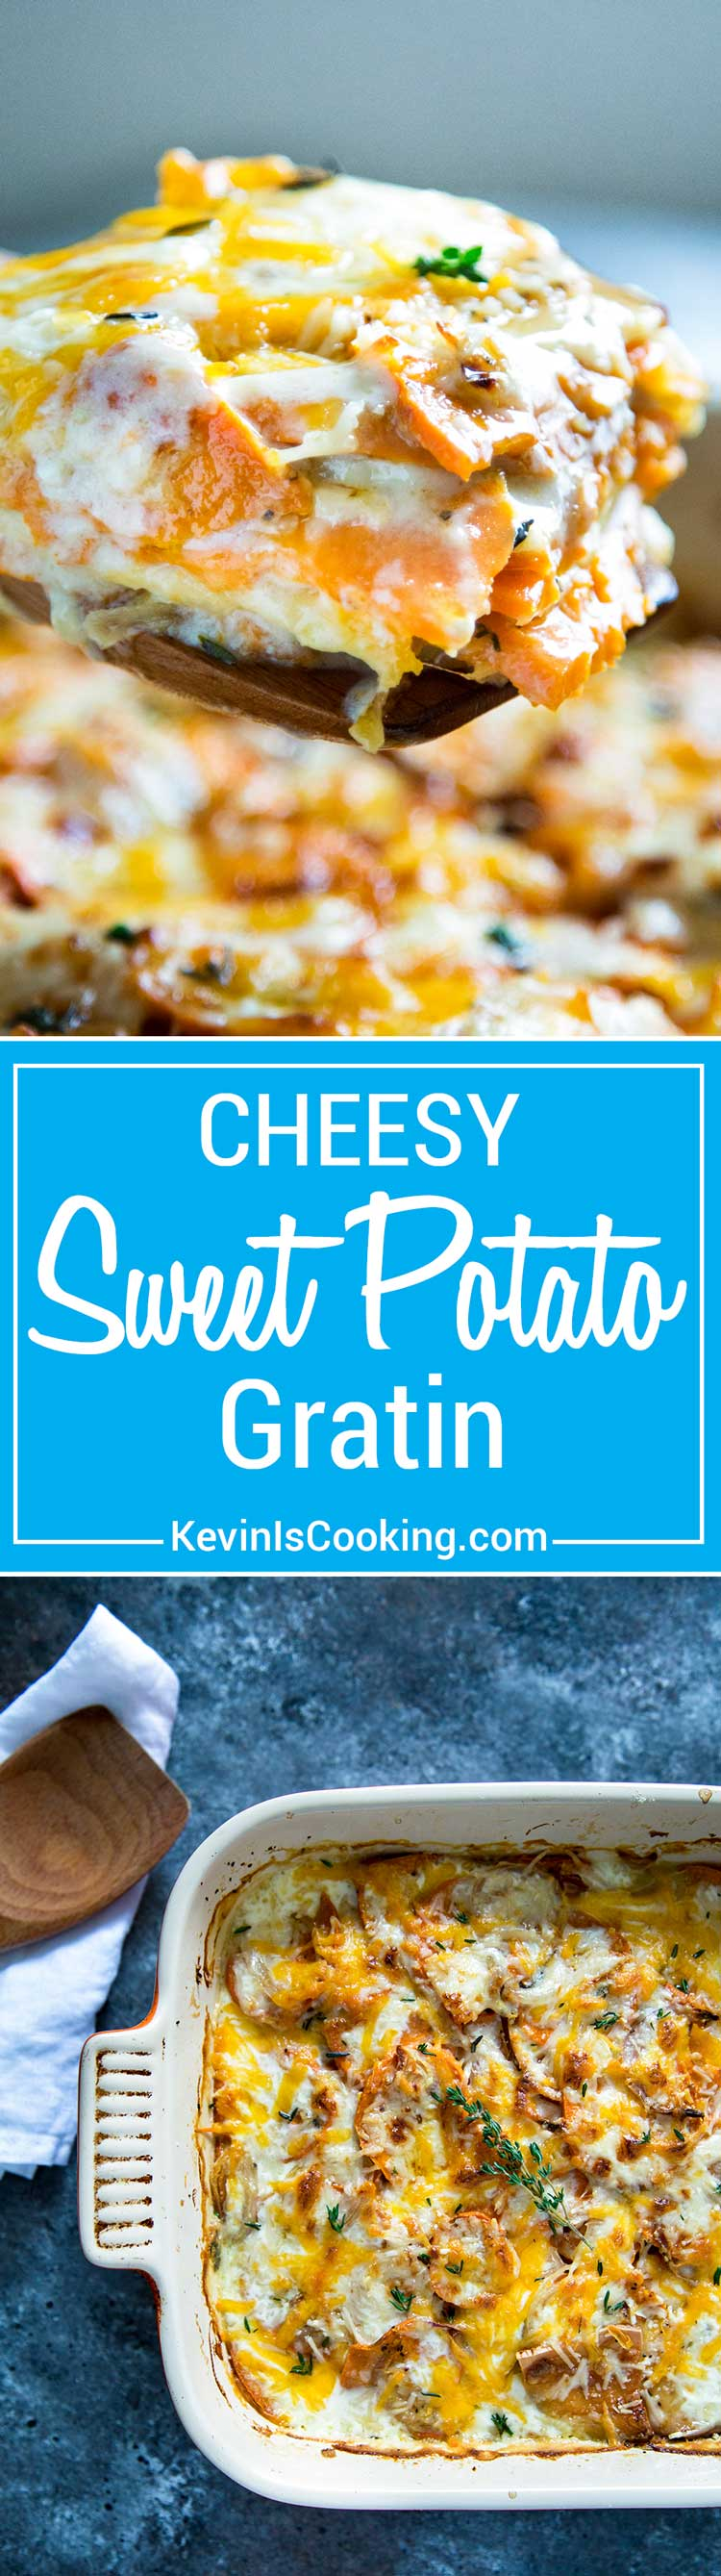 Sweet Potato Gratin has layers of sliced sweet potato, shallots and cheese get topped with cream and chicken broth, then baked to a bubbly, golden brown. Fantastic side dish and a switch up from the usual scalloped potatoes!